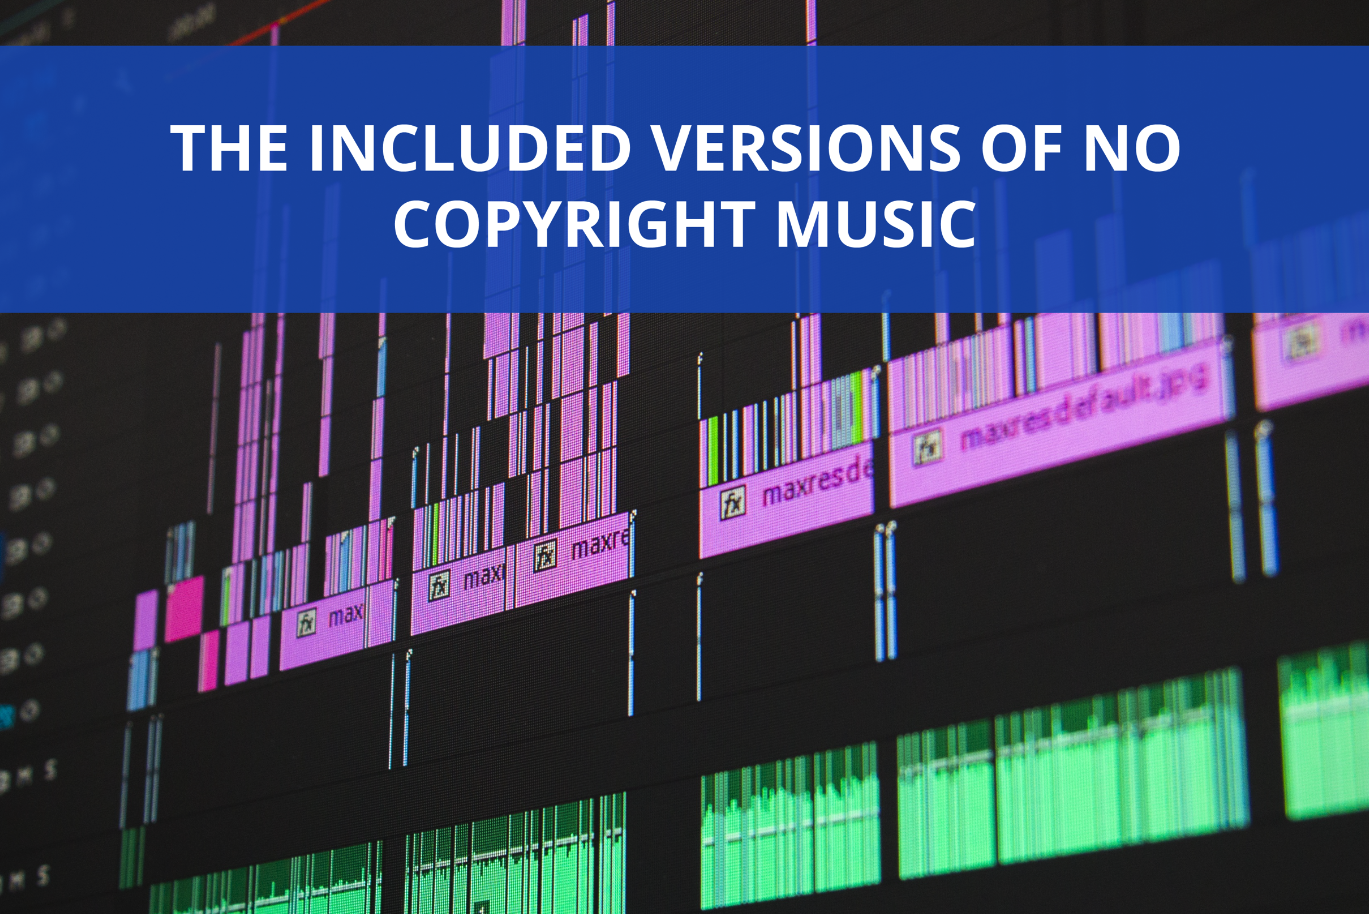 How to Use The Versions of a No Copyright Music? (In Instagram Feed Videos & In Long Interviews)